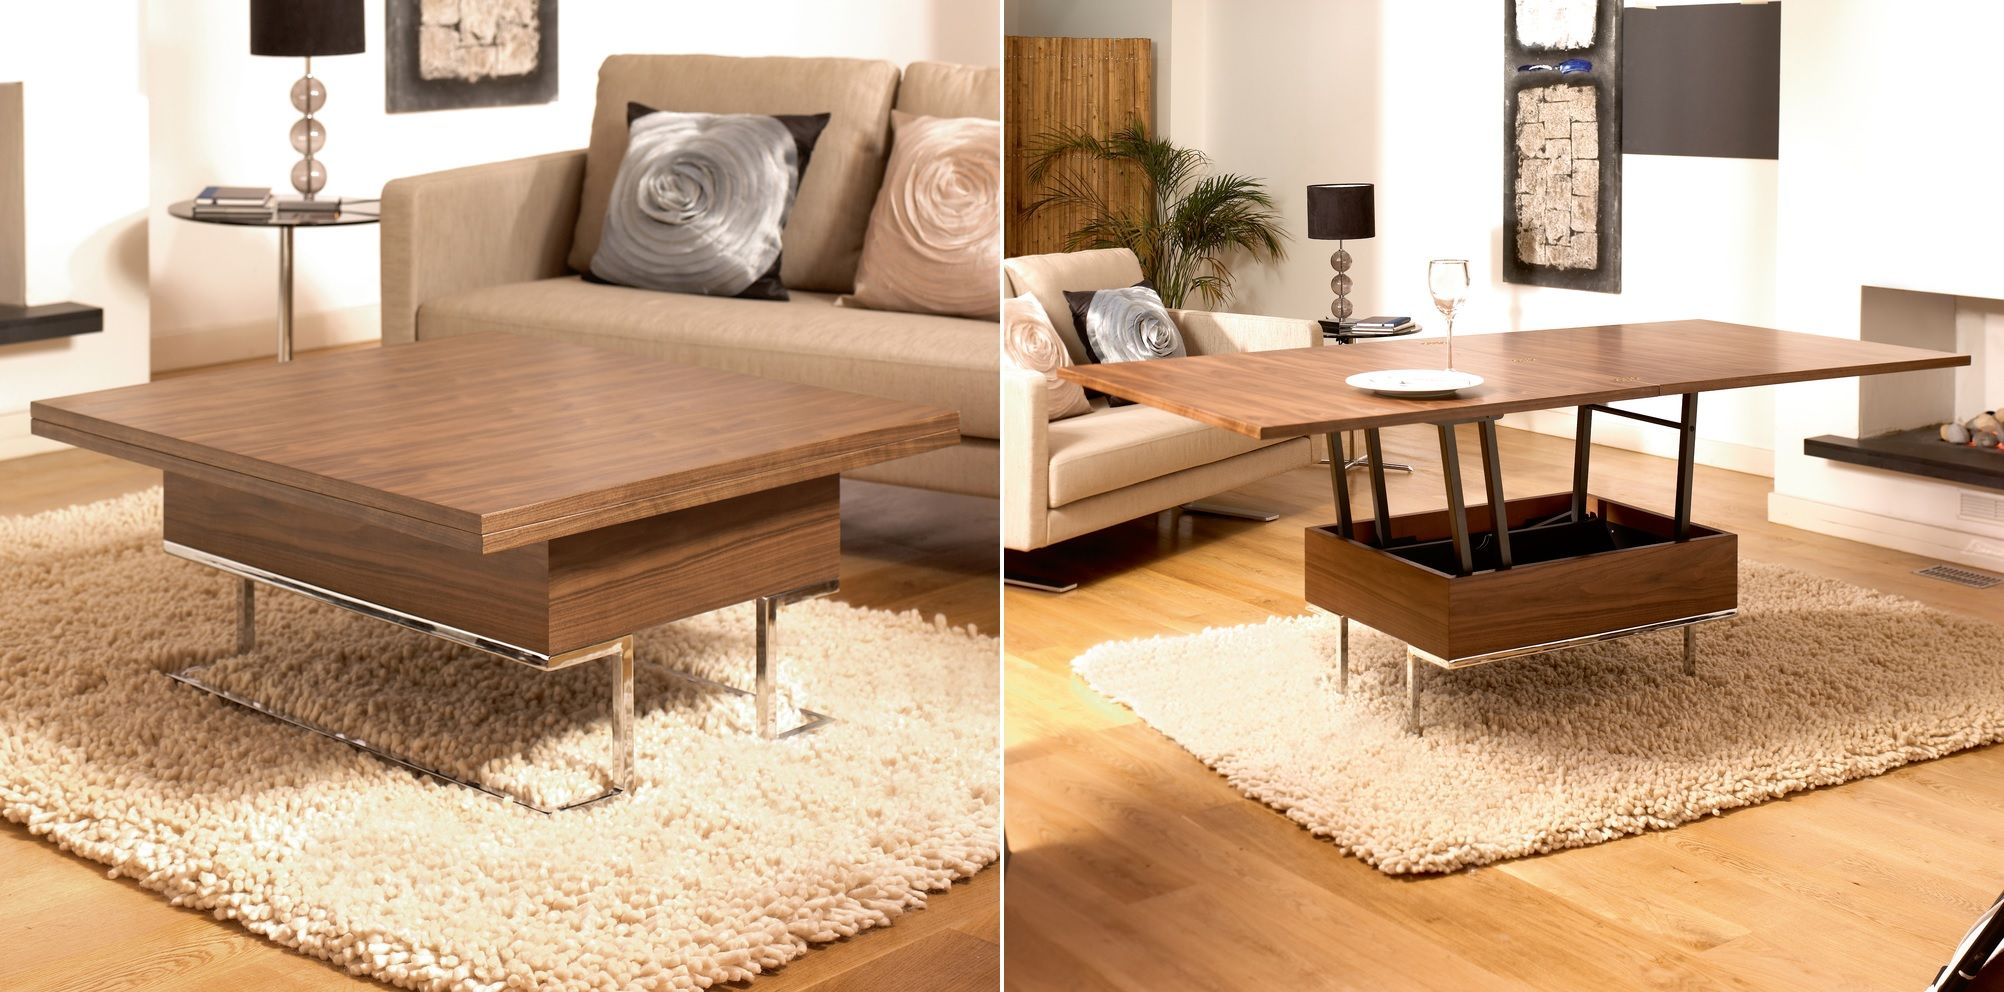 more functions in a compact design - convertible coffee tables